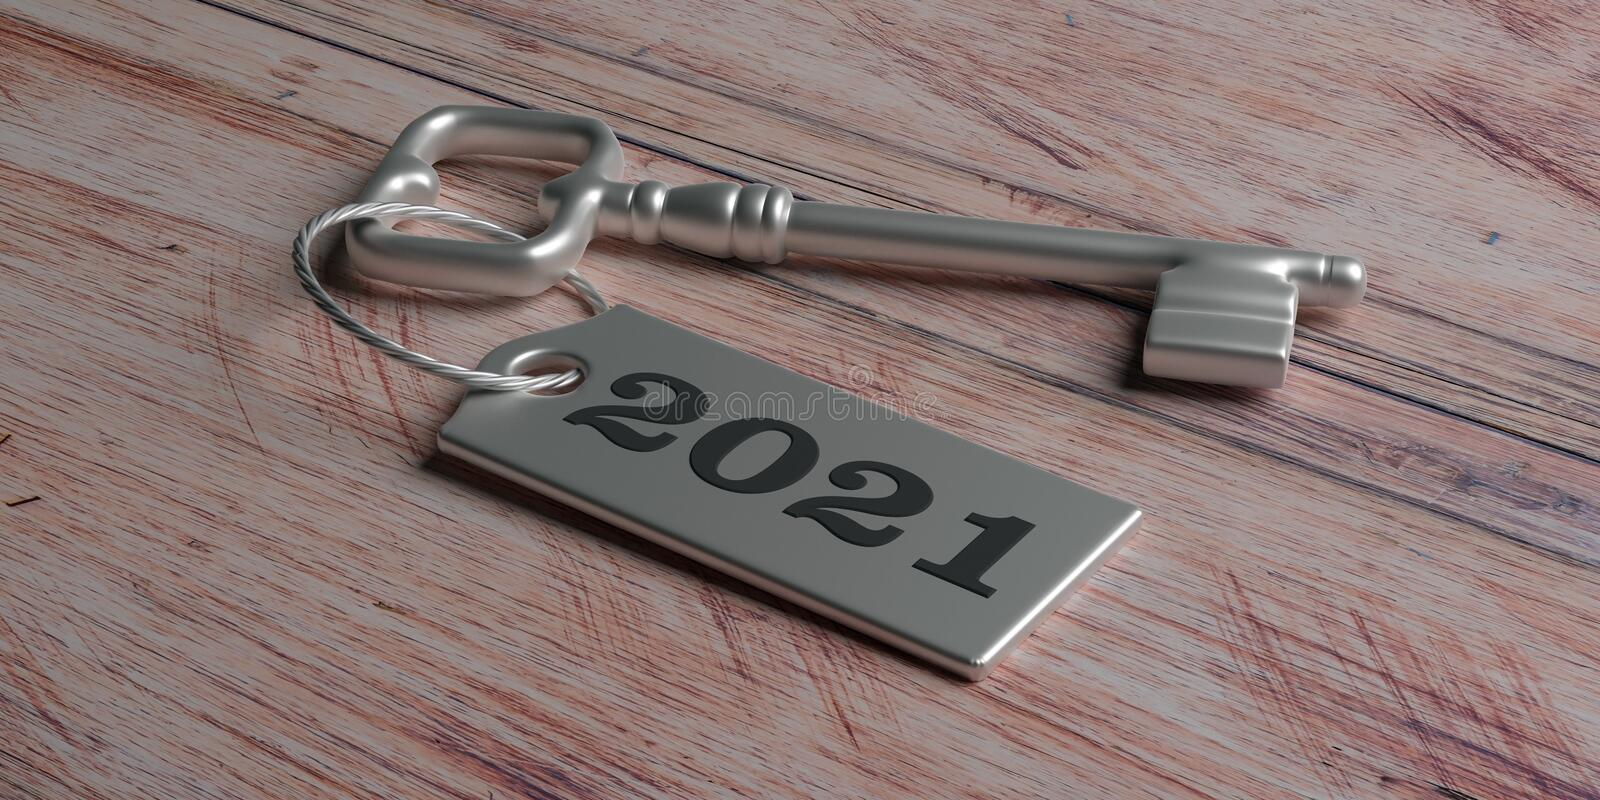 2021 New year, Label 2021 on door key against wood. 3d illustration royalty free illustration